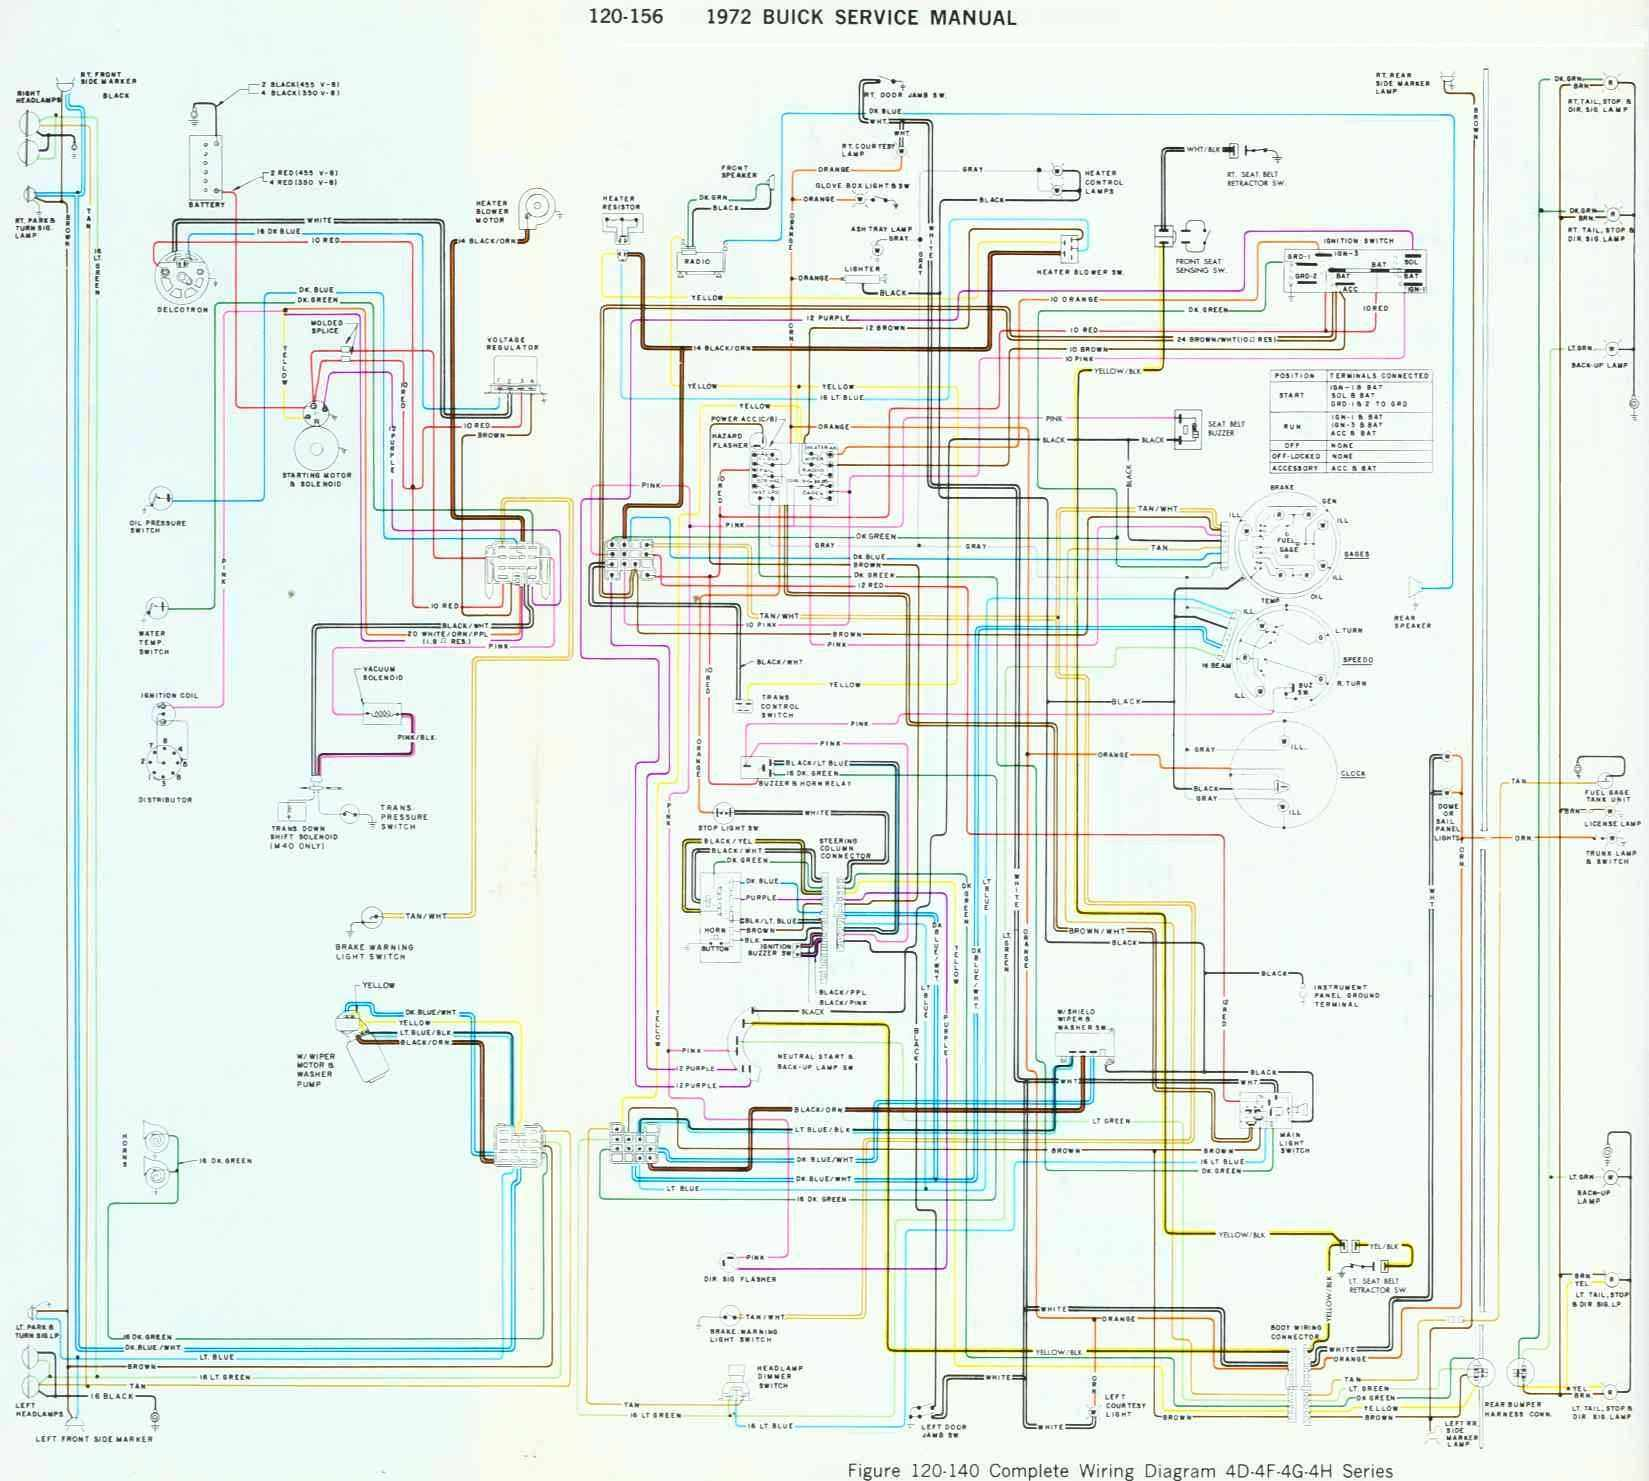 small resolution of 96 buick ac wiring diagram schematic wiring diagrams u2022 1975 buick 1970 buick ac diagram